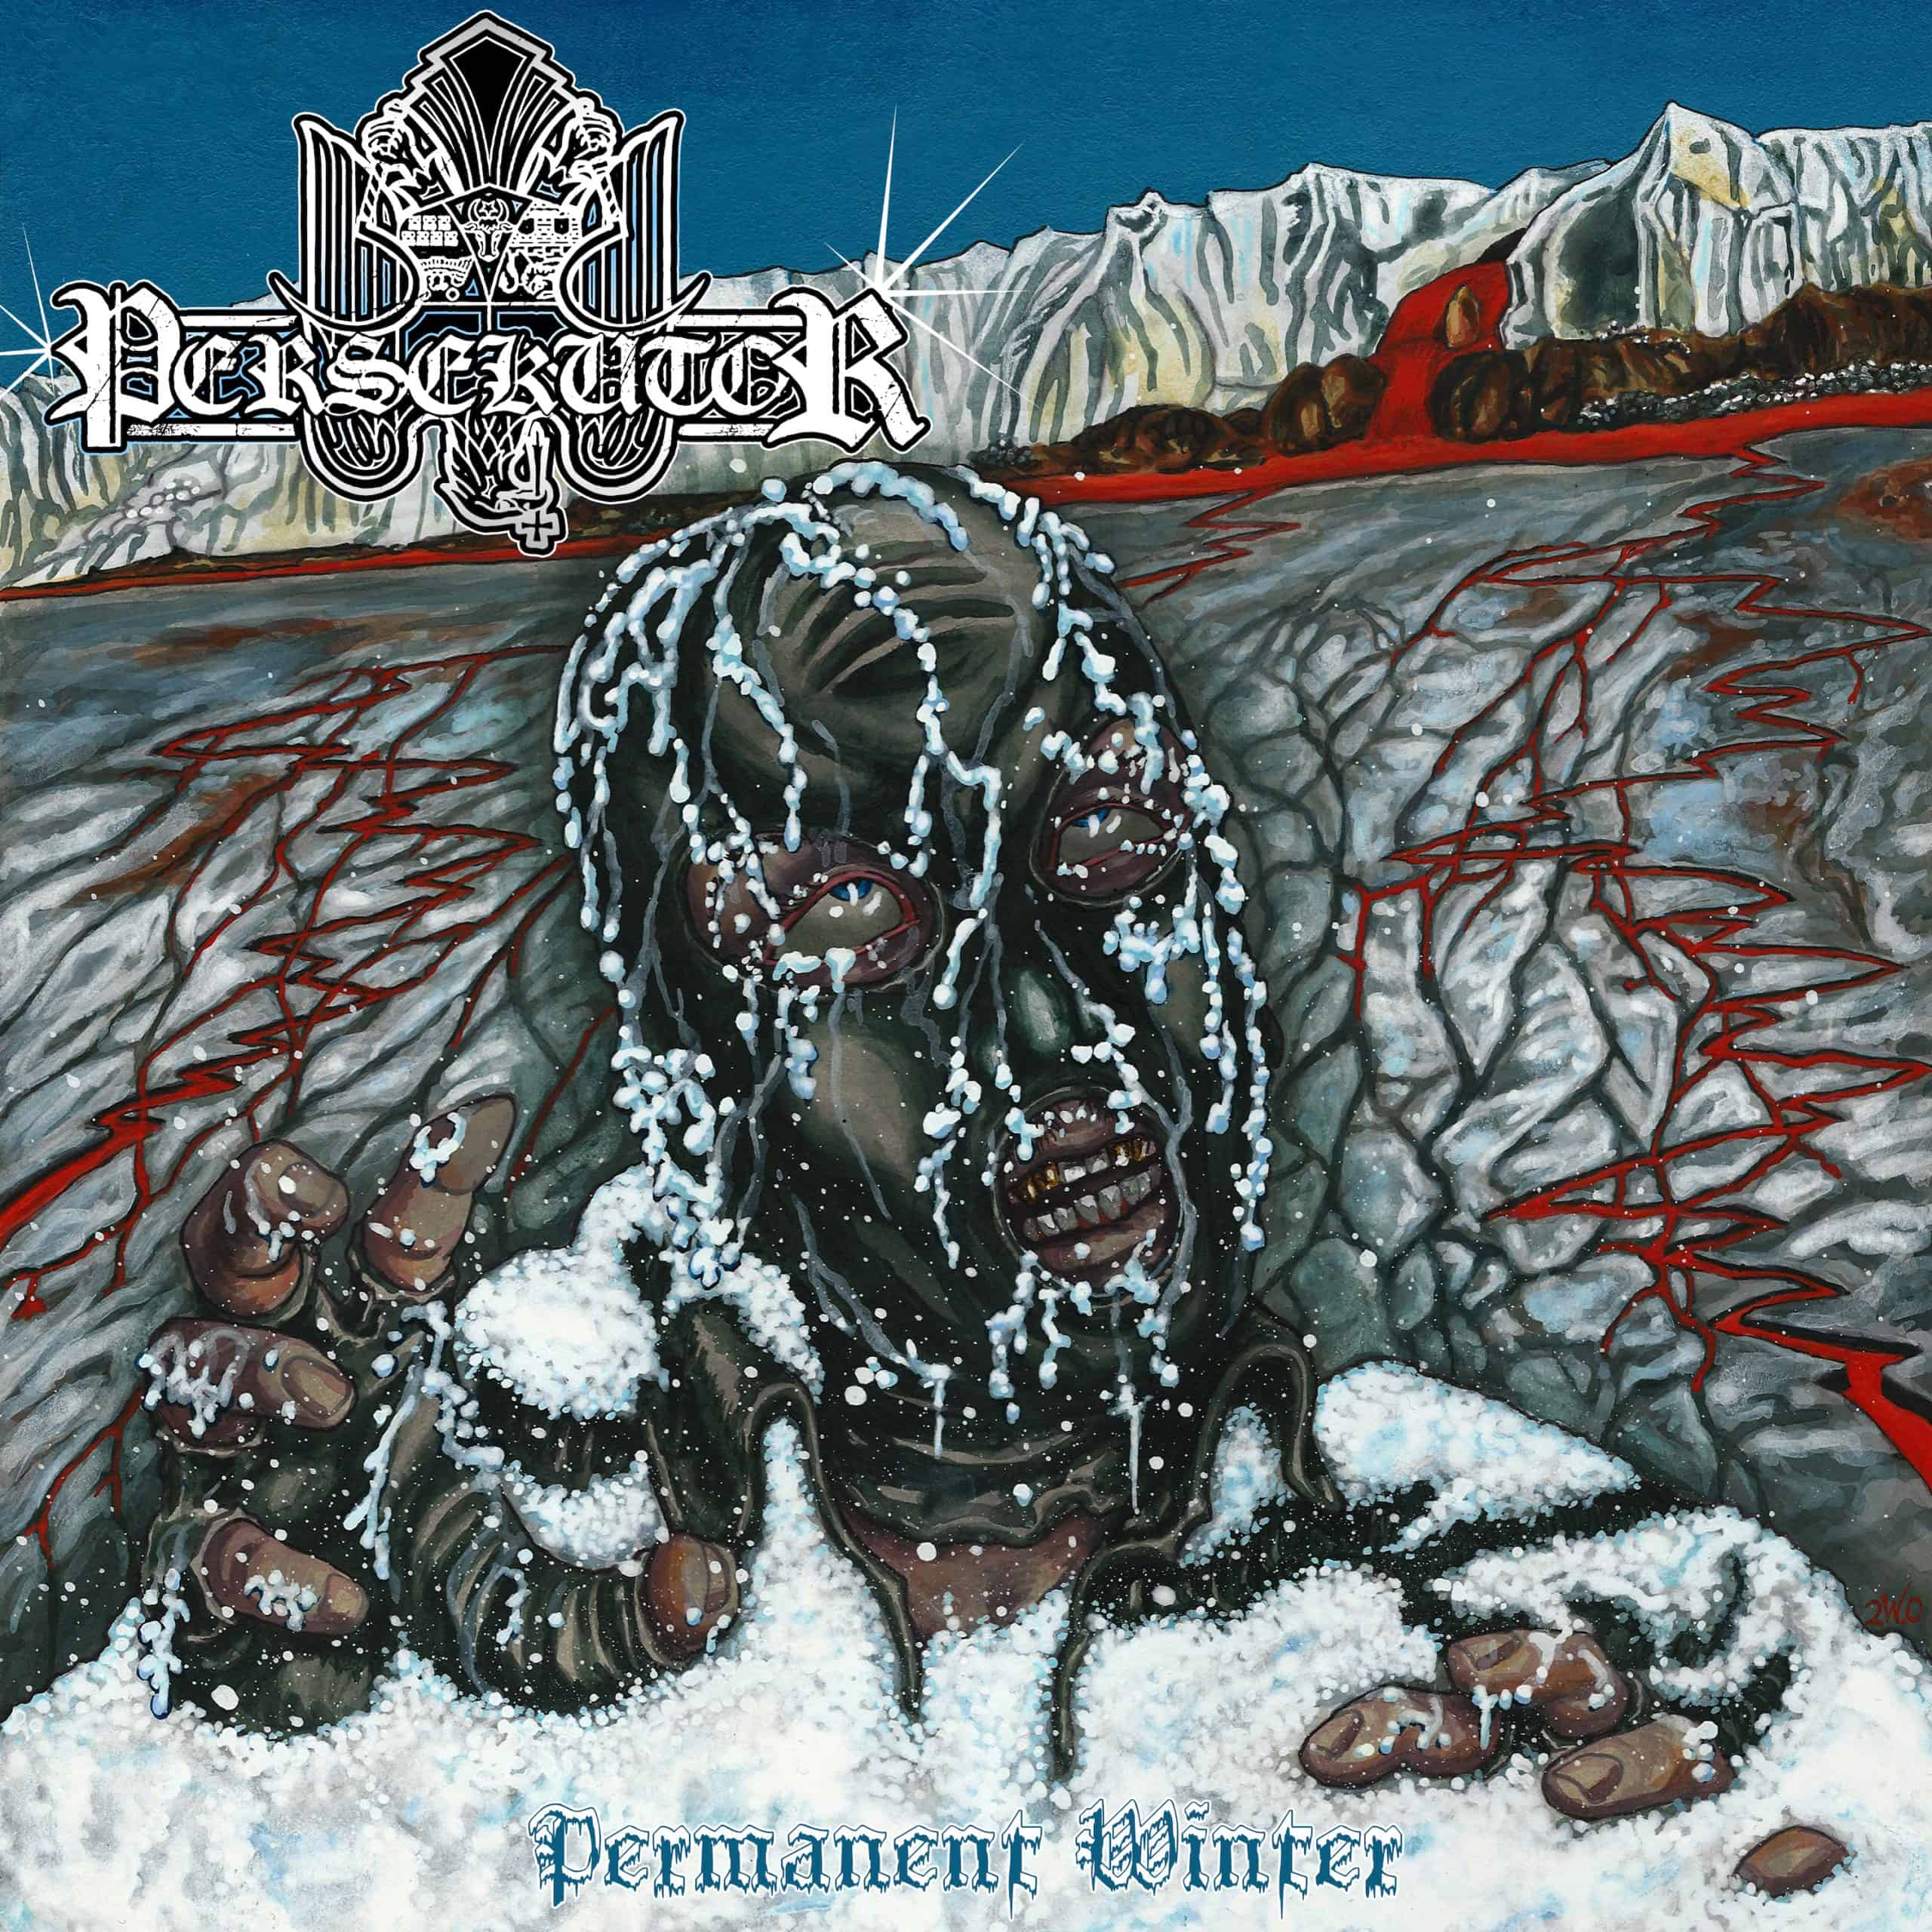 persekutor_permanent_winter_cover-scaled